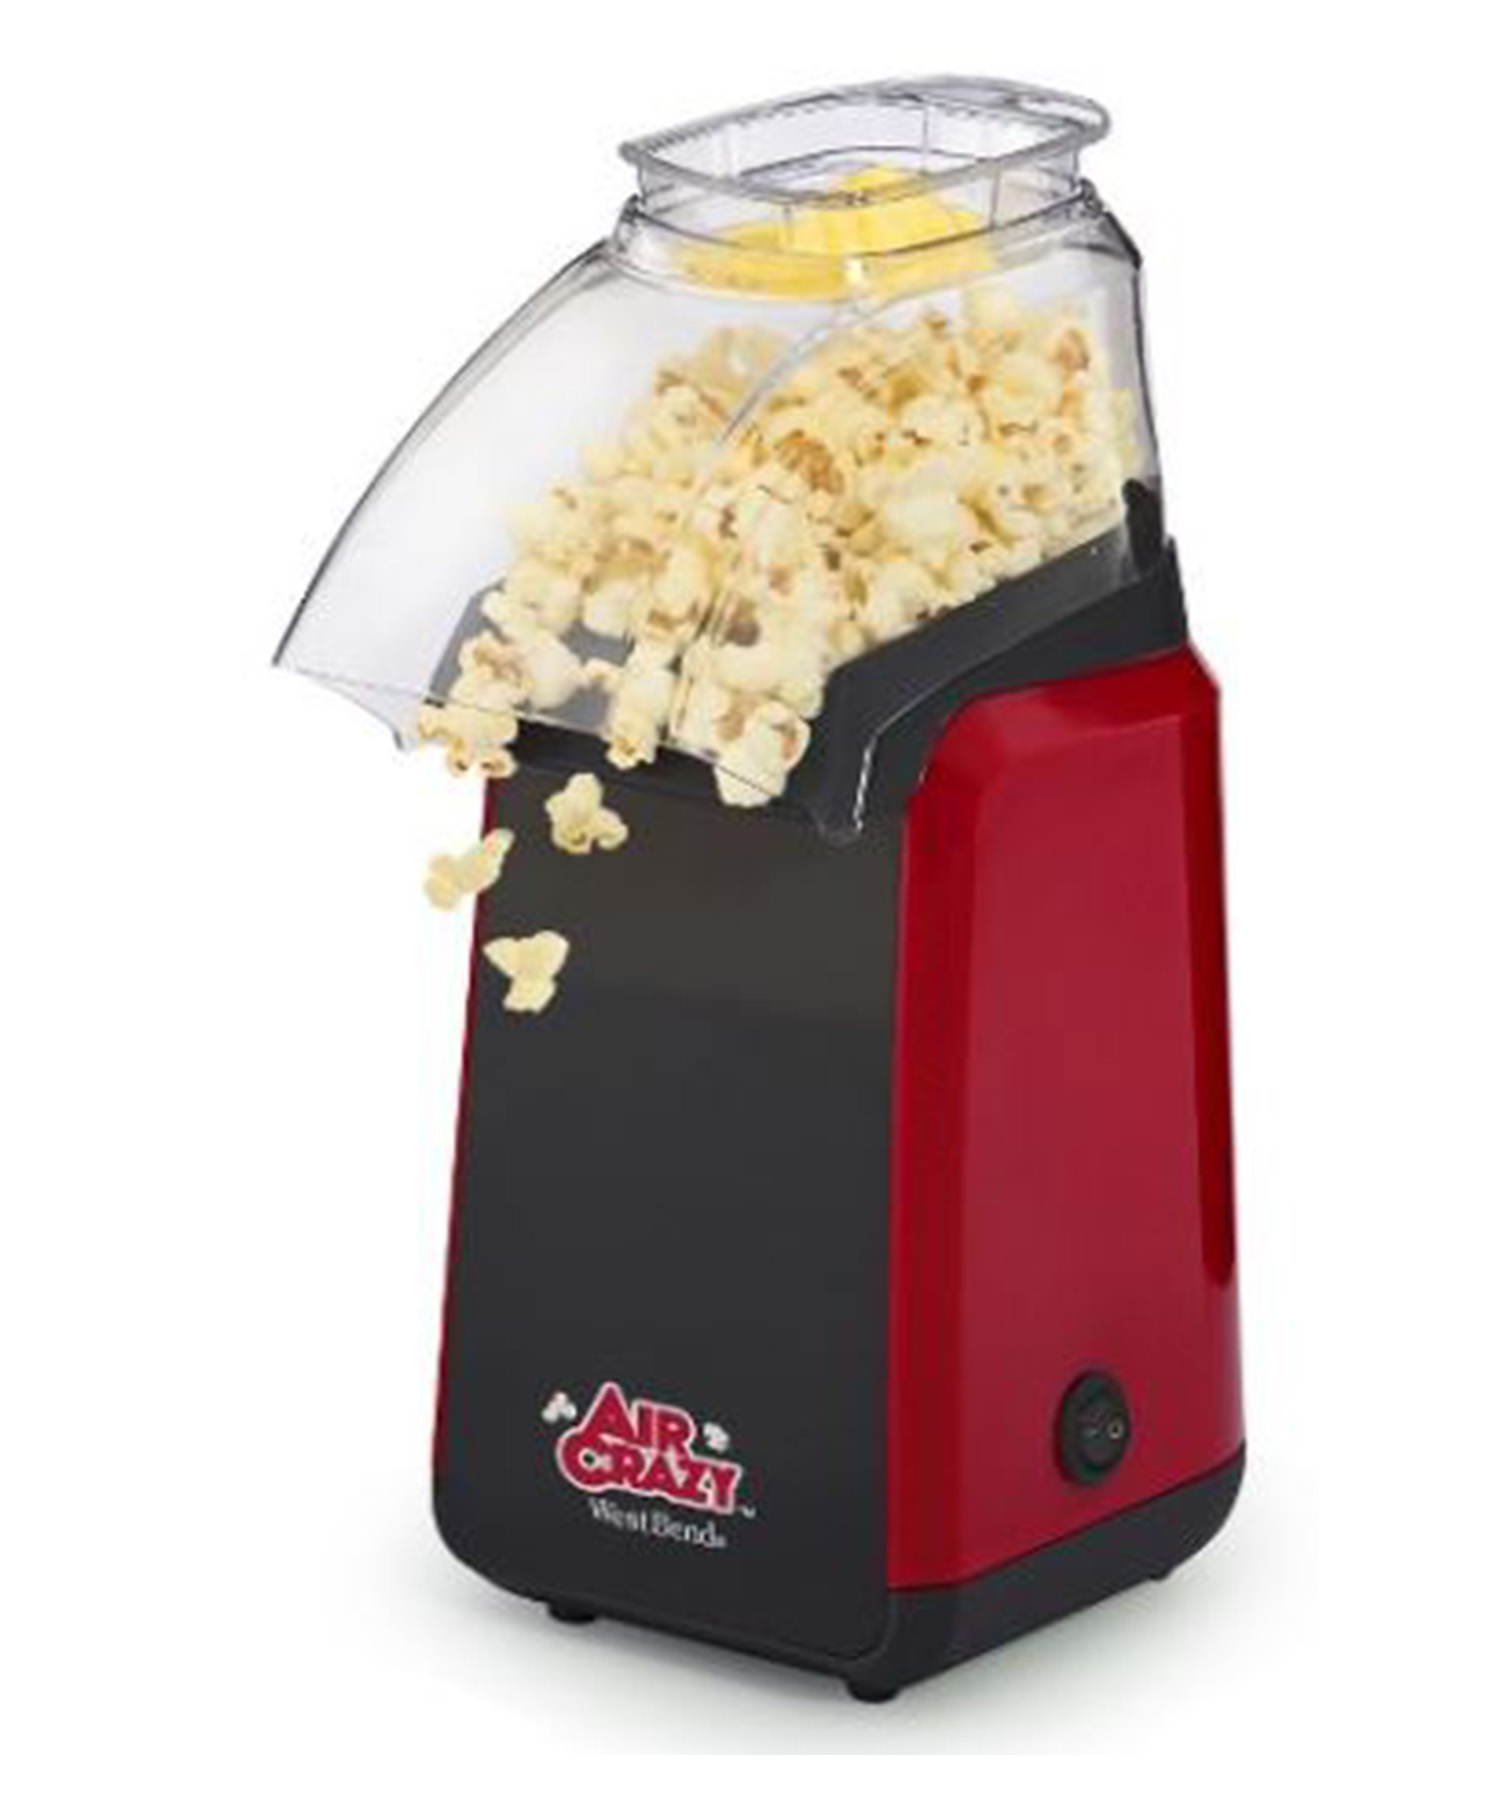 West Bend Air Crazy Popcorn Maker Machine in red